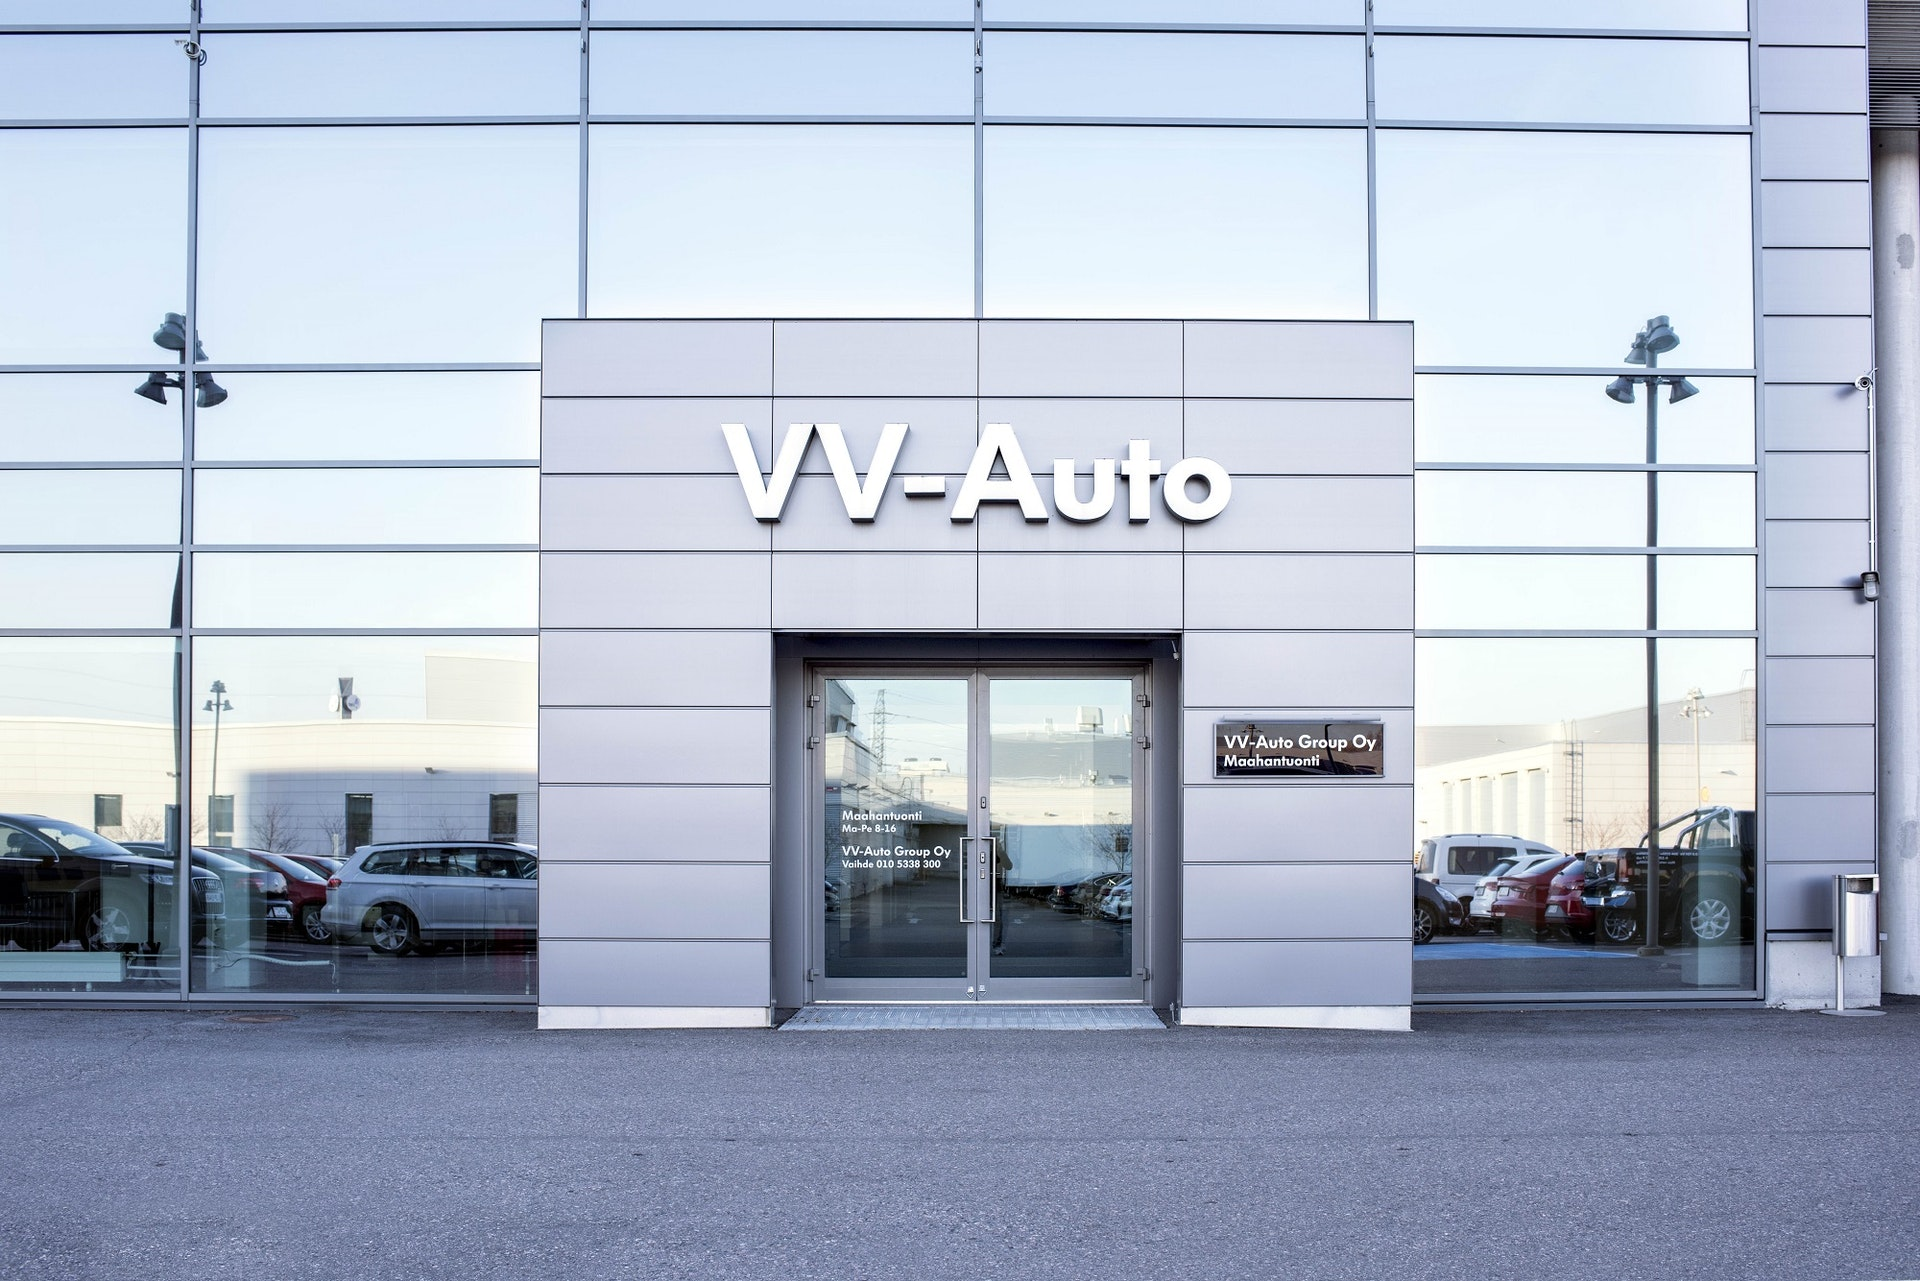 Banner VV-Auto Group Oy